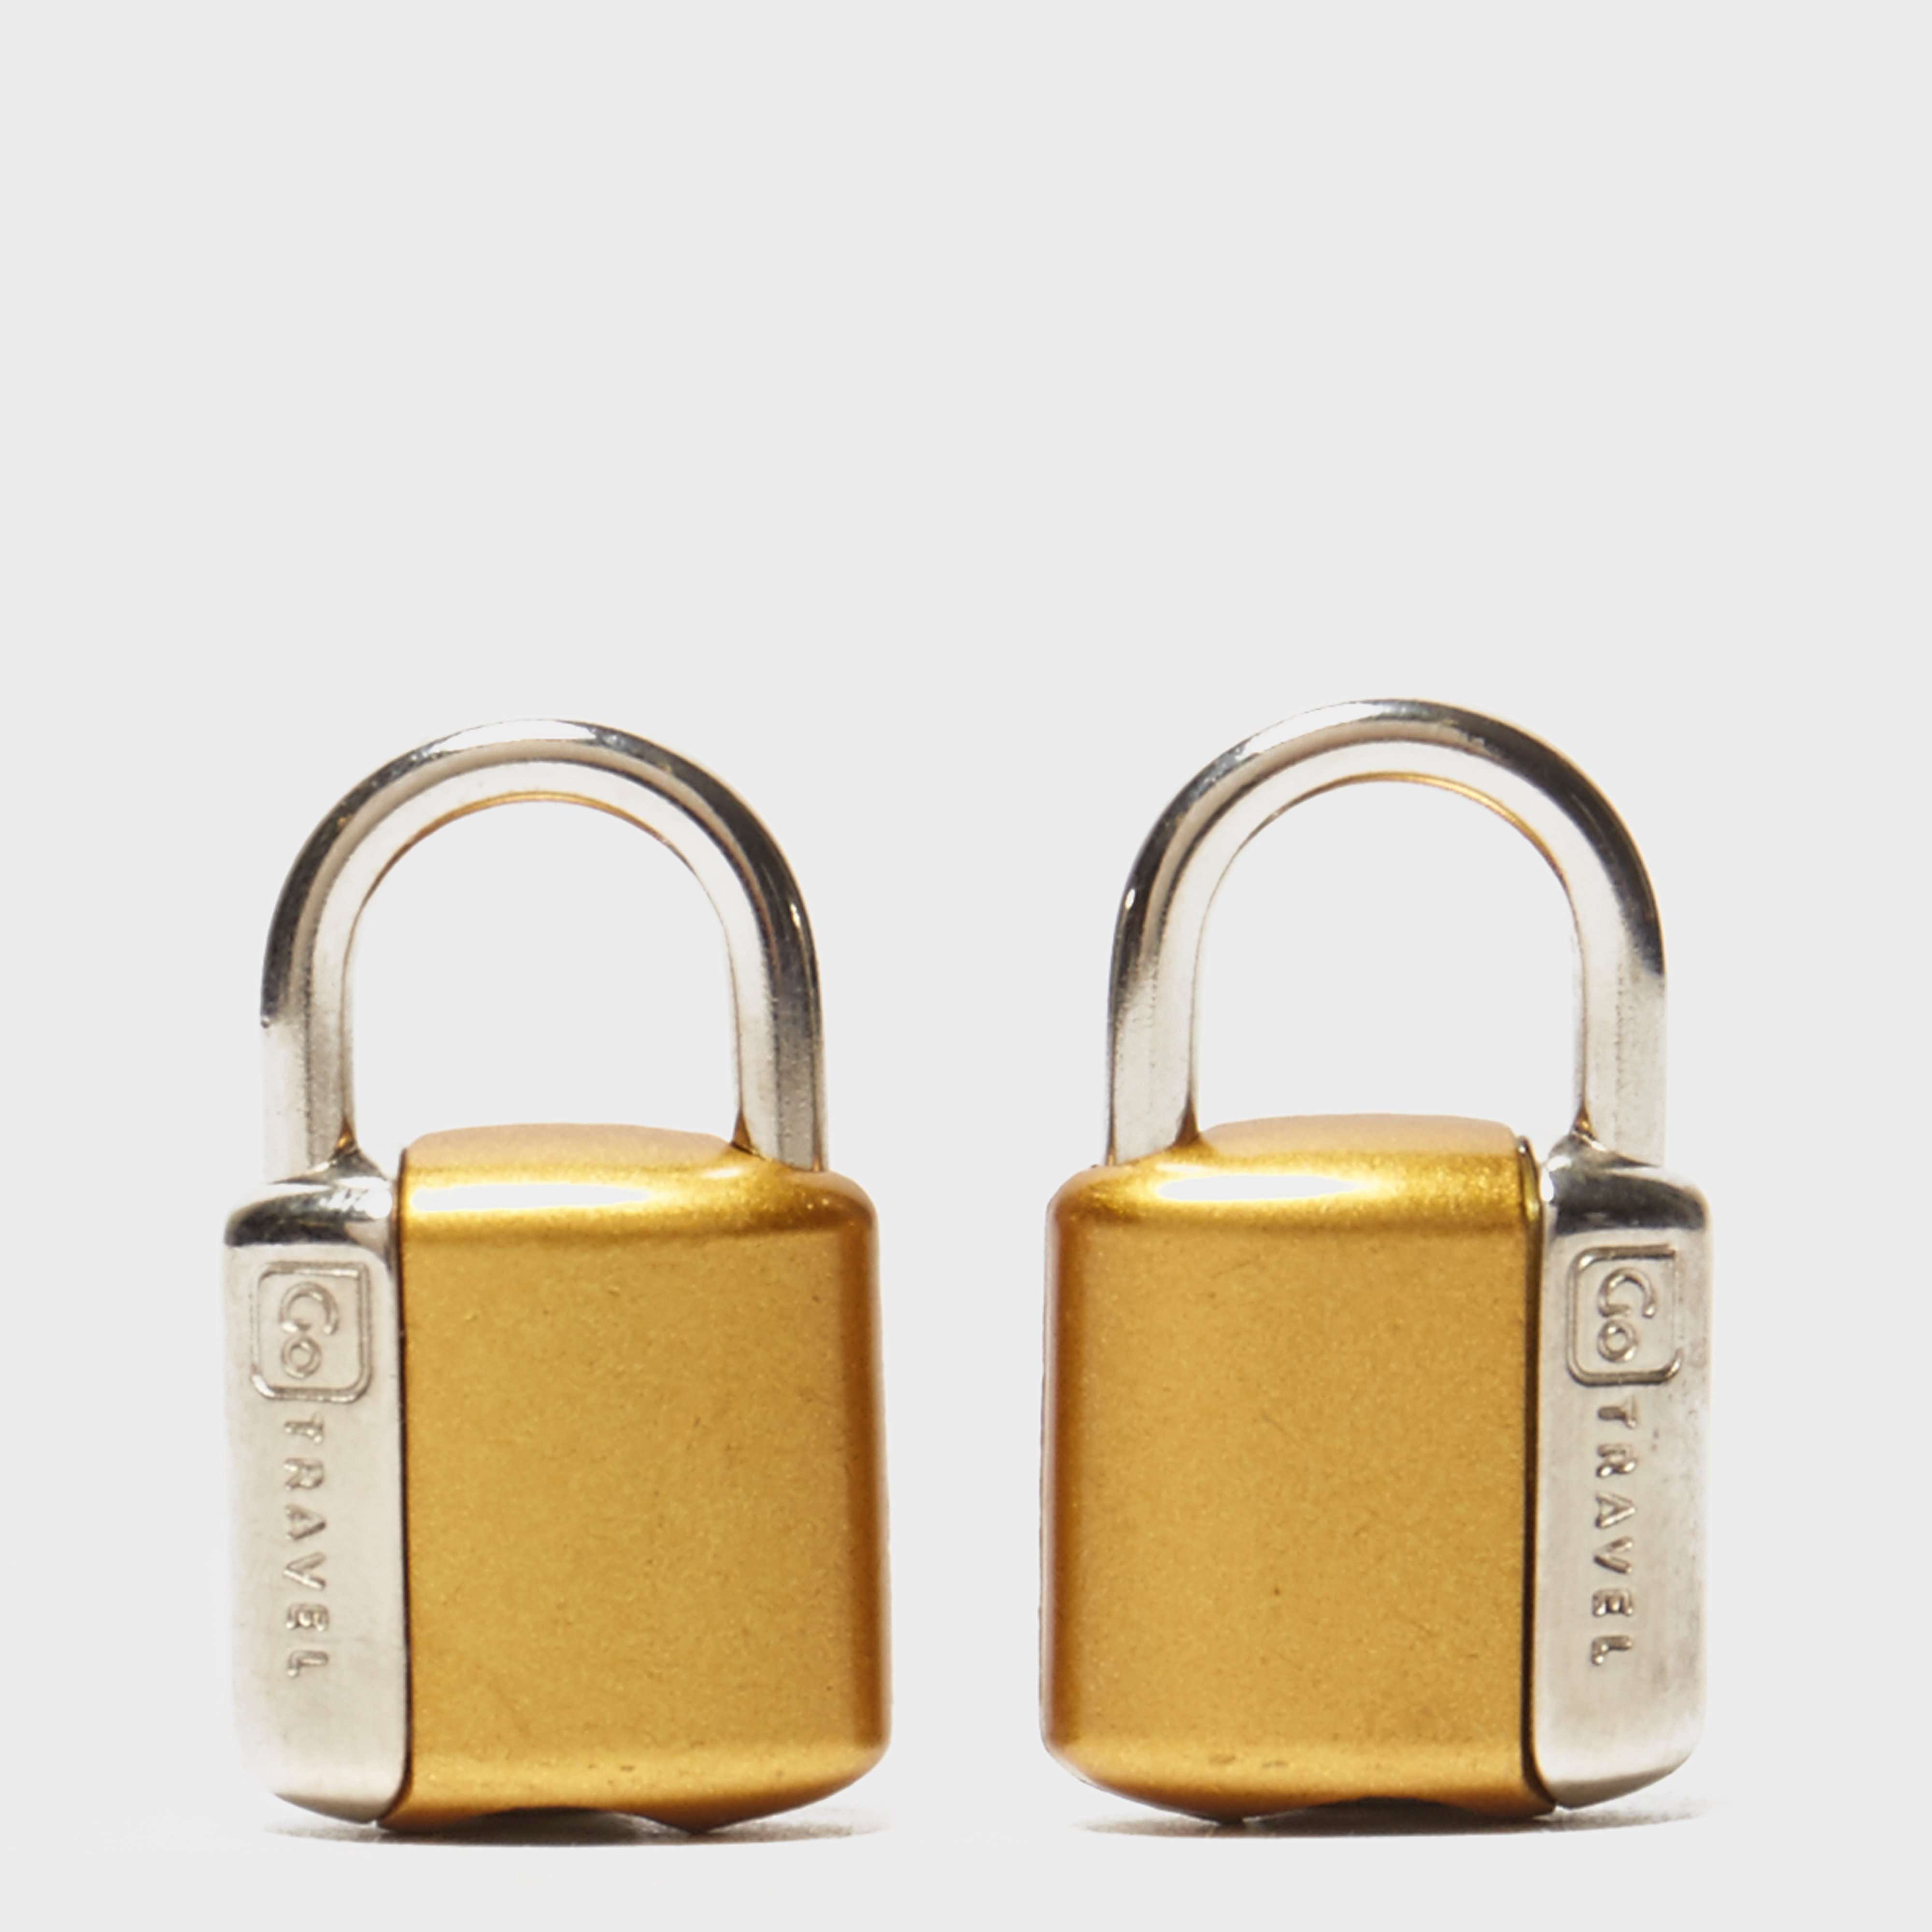 DESIGN GO Twin Pack Case Lock